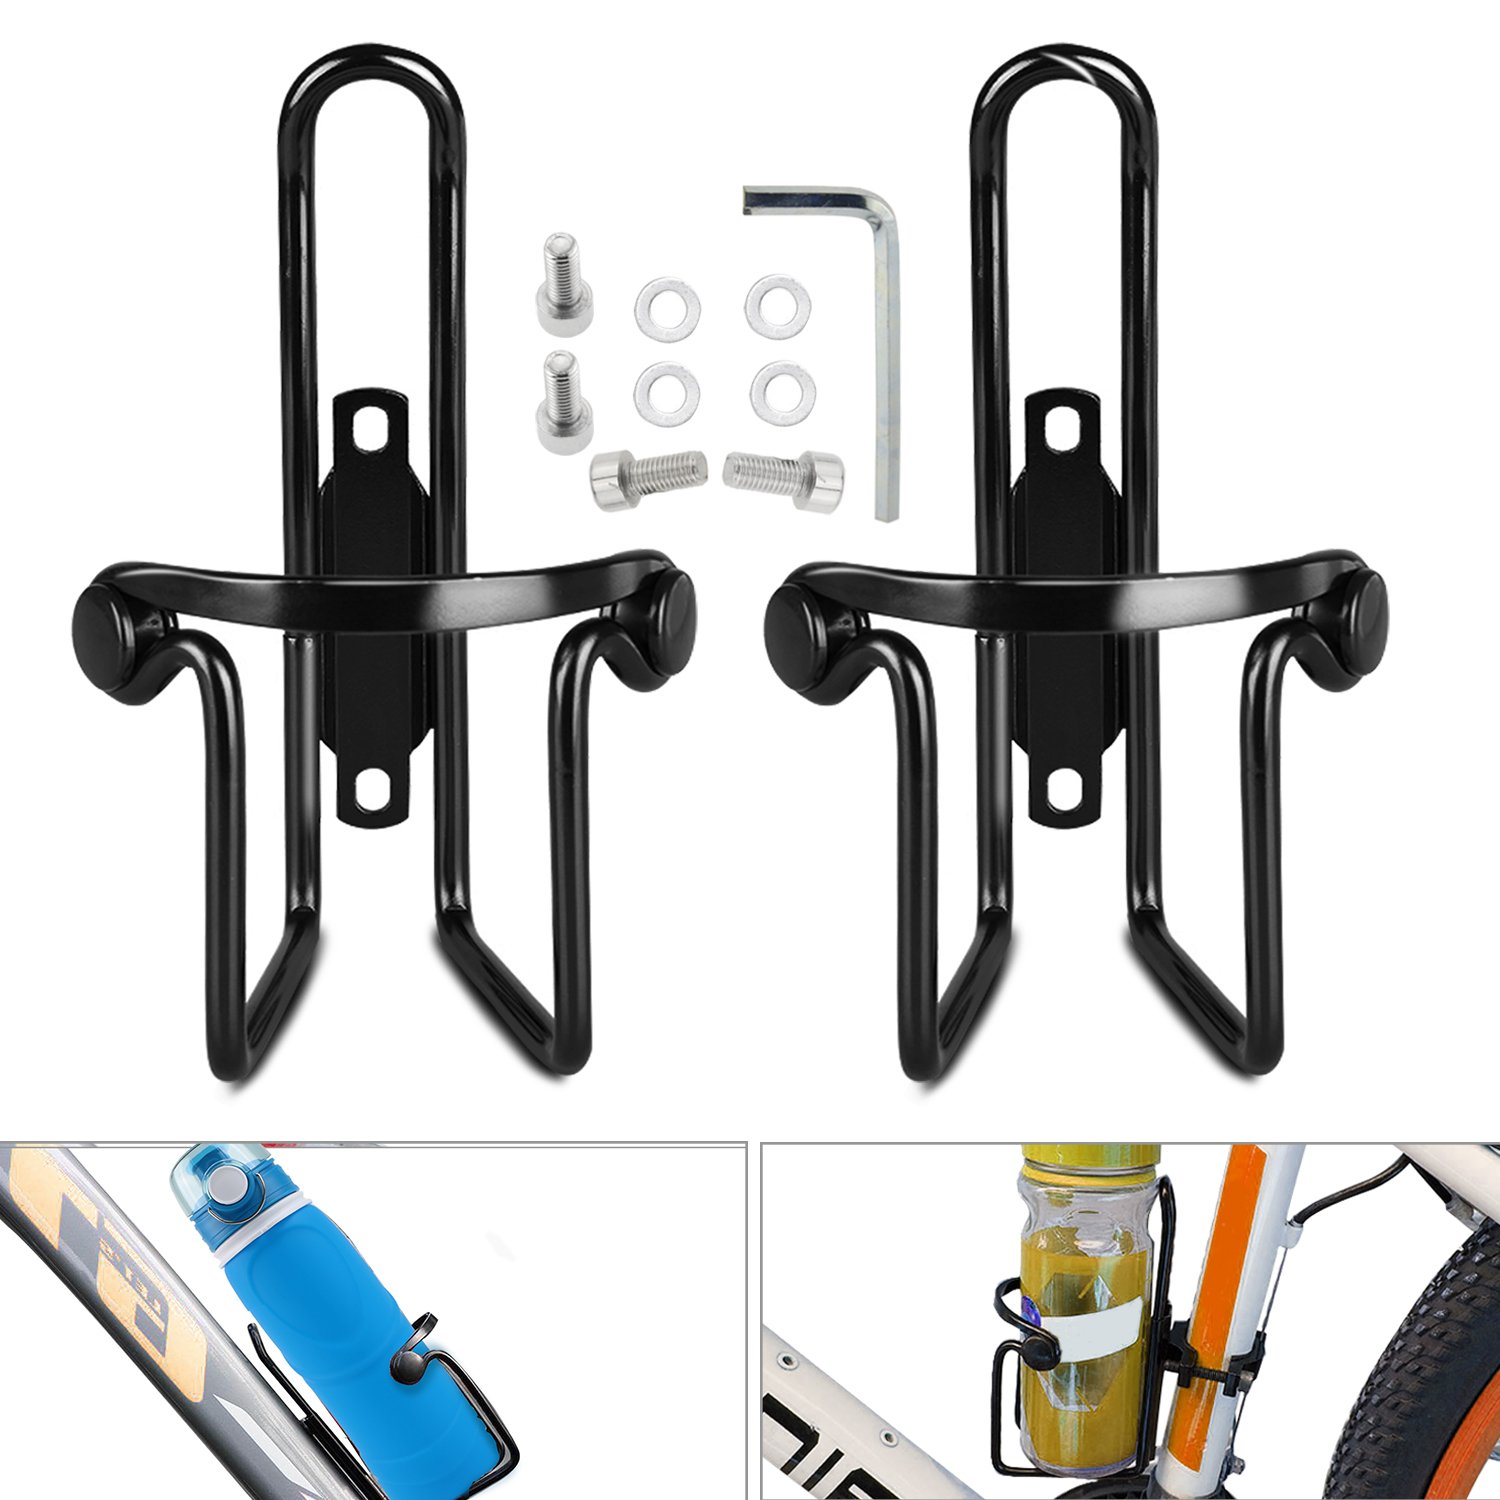 Bicycle Bike Water Bottle Cage, WisFox 2 Pack Alloy Updated Bicycle Bike Water Bottle Holder Cage for Road and Mountain Bikes